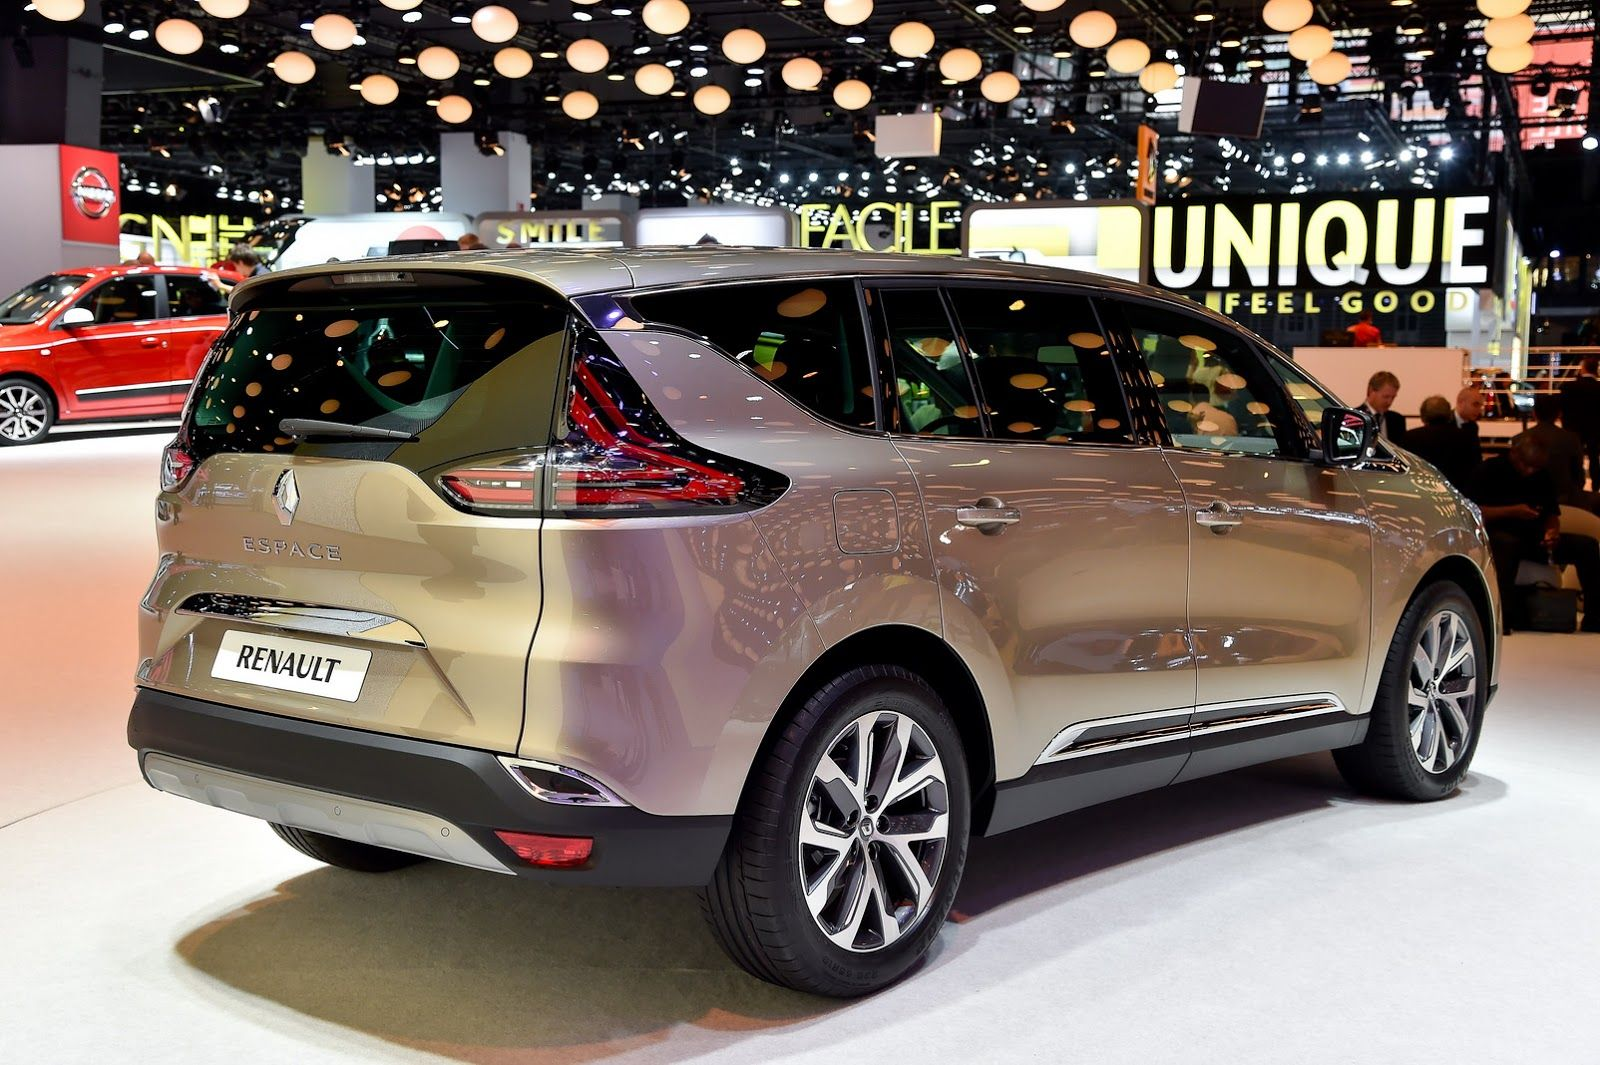 All New Espace Could Arrive In The Uk After All Renault Boss Says Renault Espace Renault Espace